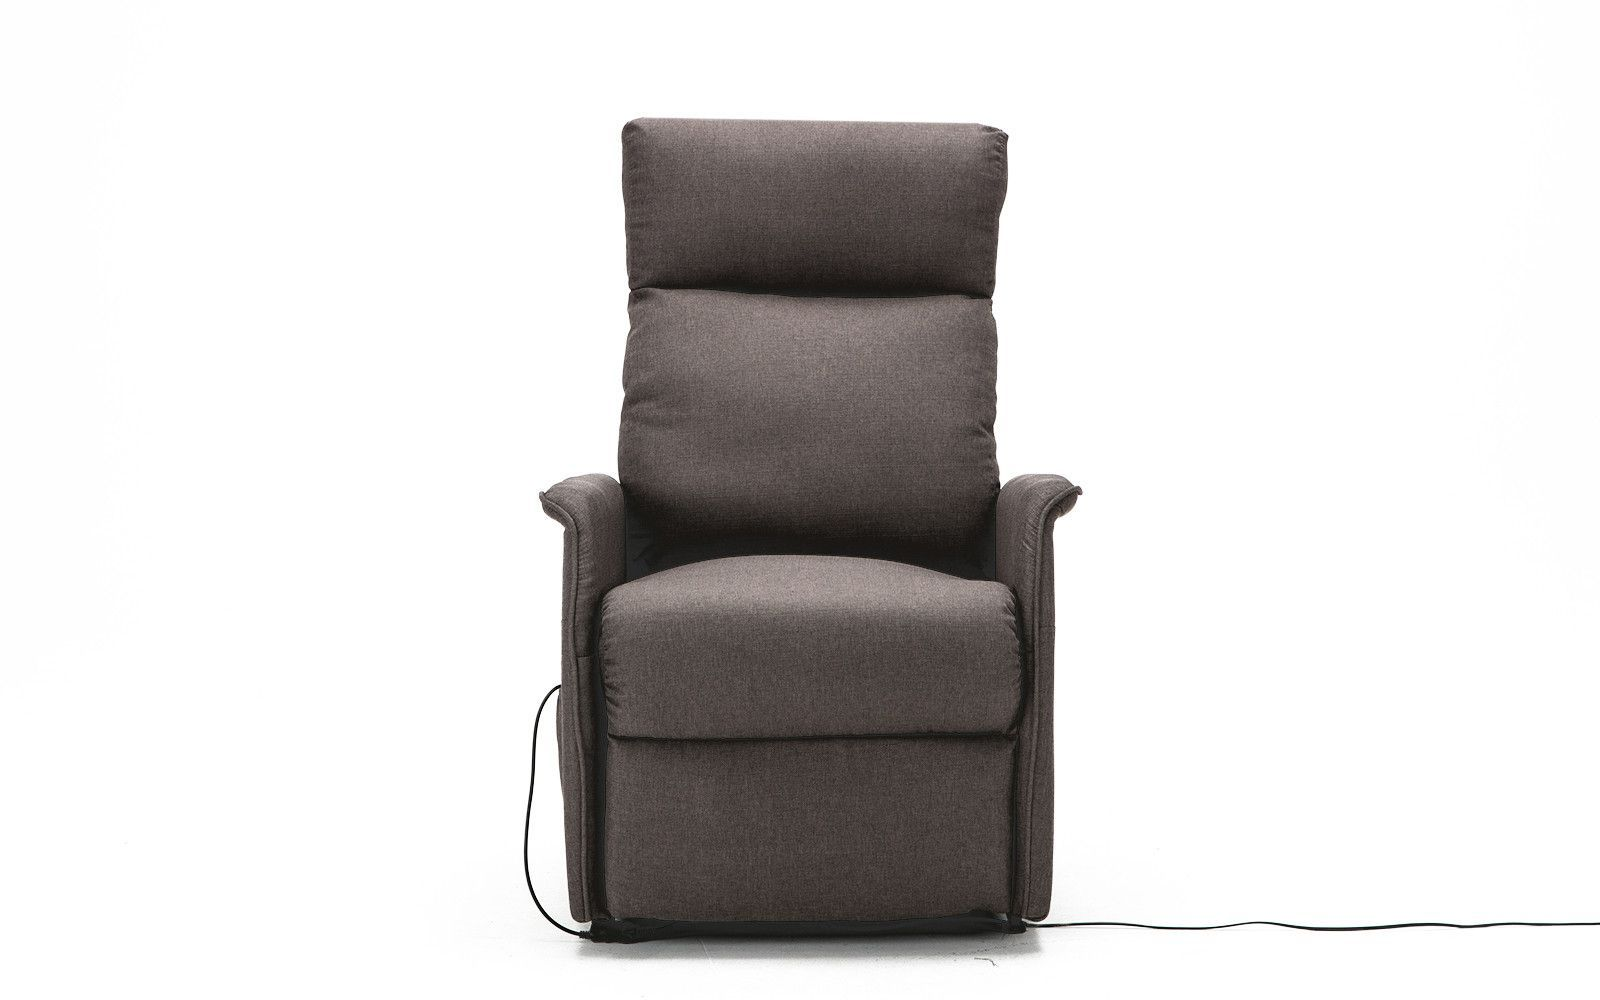 constructed recliners recliner kiln pin superior tan adult leather hardwood swiss power with easy living swivel dried the